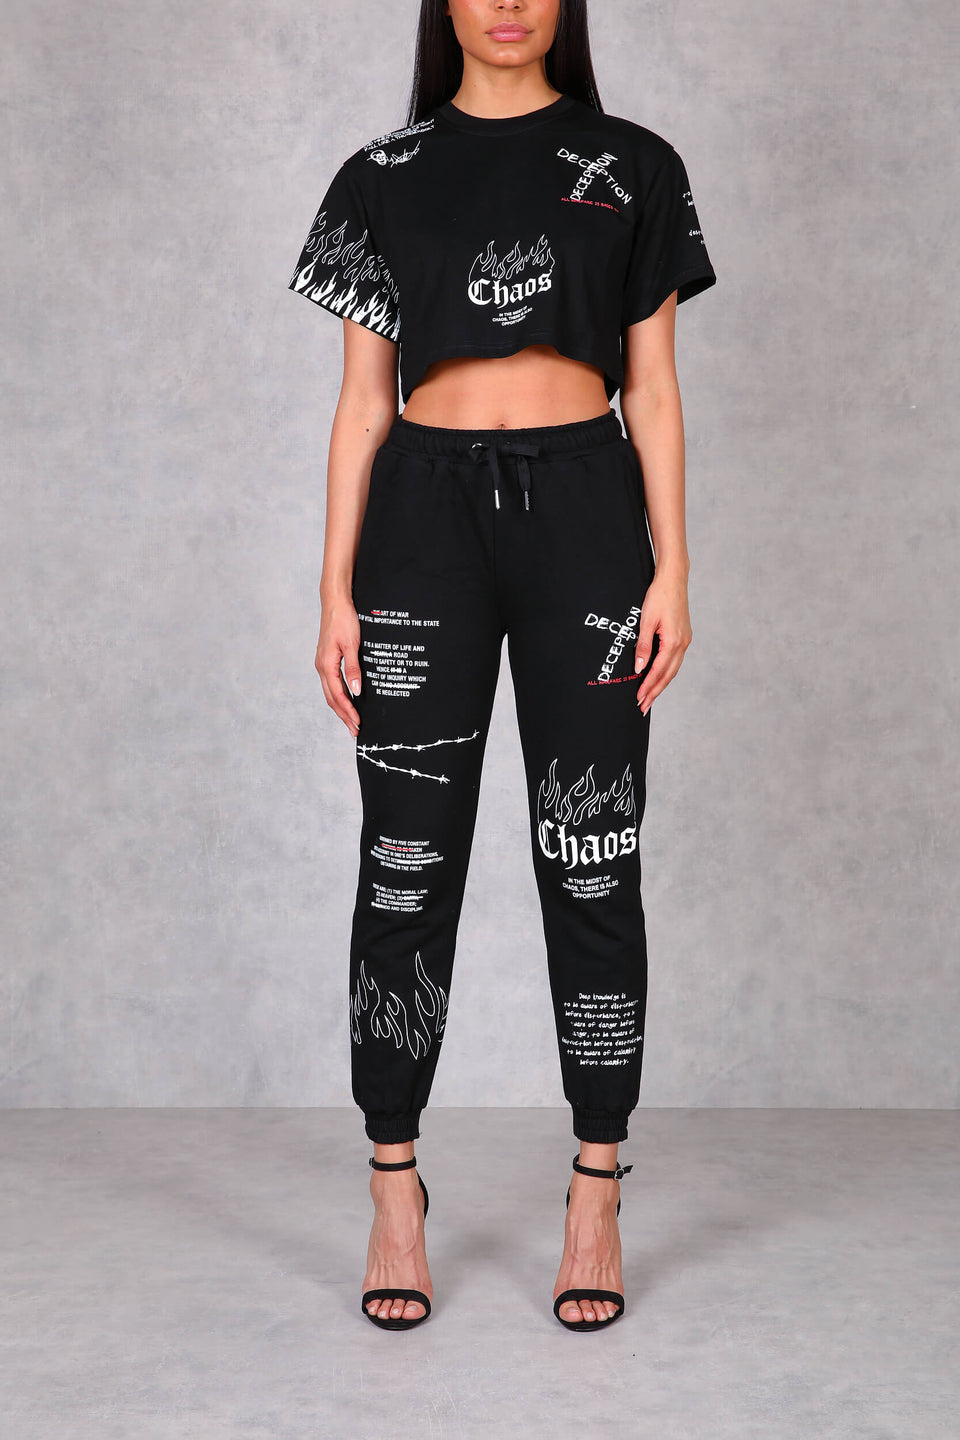 Womens Art Of War Graffiti Cropped Short Sleeve T-Shirt - Black